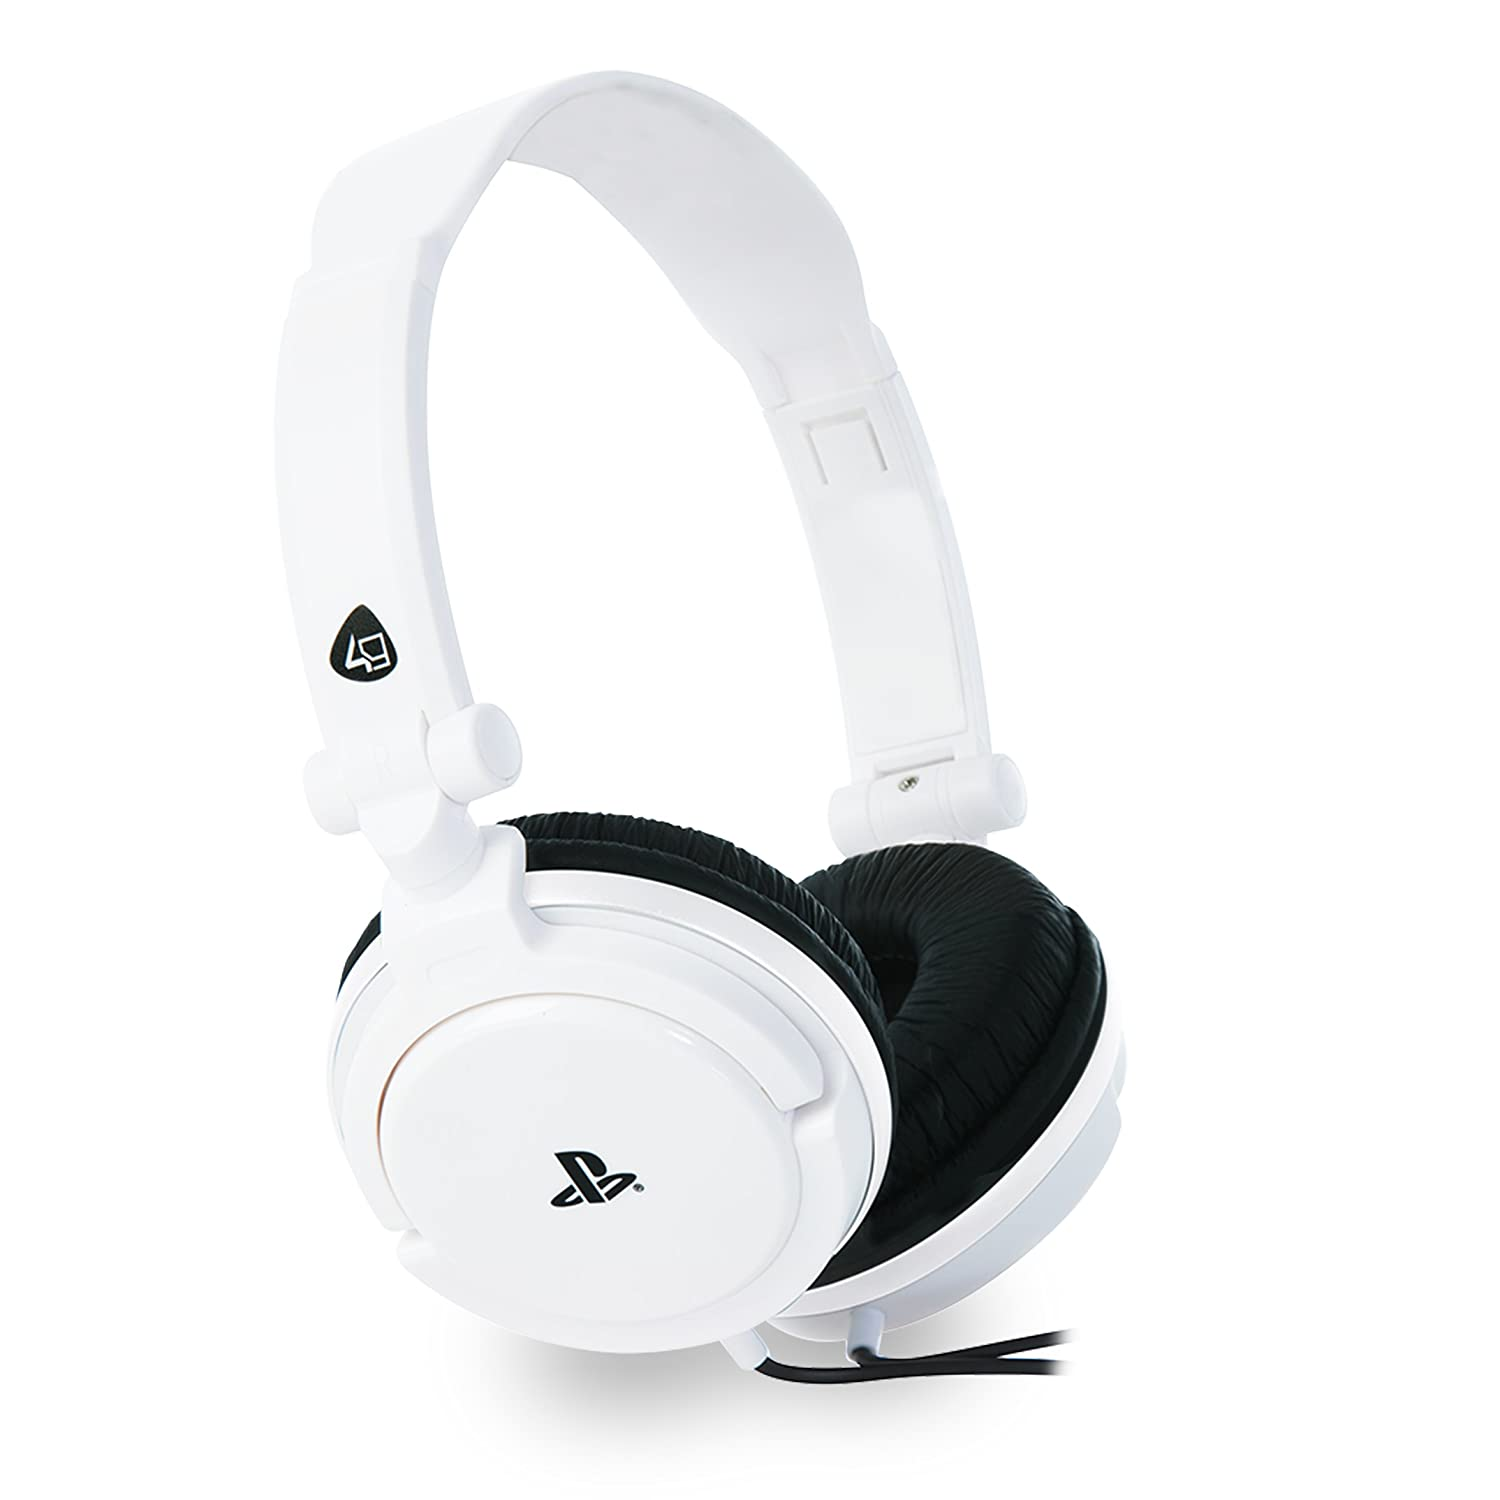 PRO4-10 Officially Licensed Stereo Gaming Headset - White (PS4 PSVita)   Amazon.co.uk  PC   Video Games f4cb3ae5b4